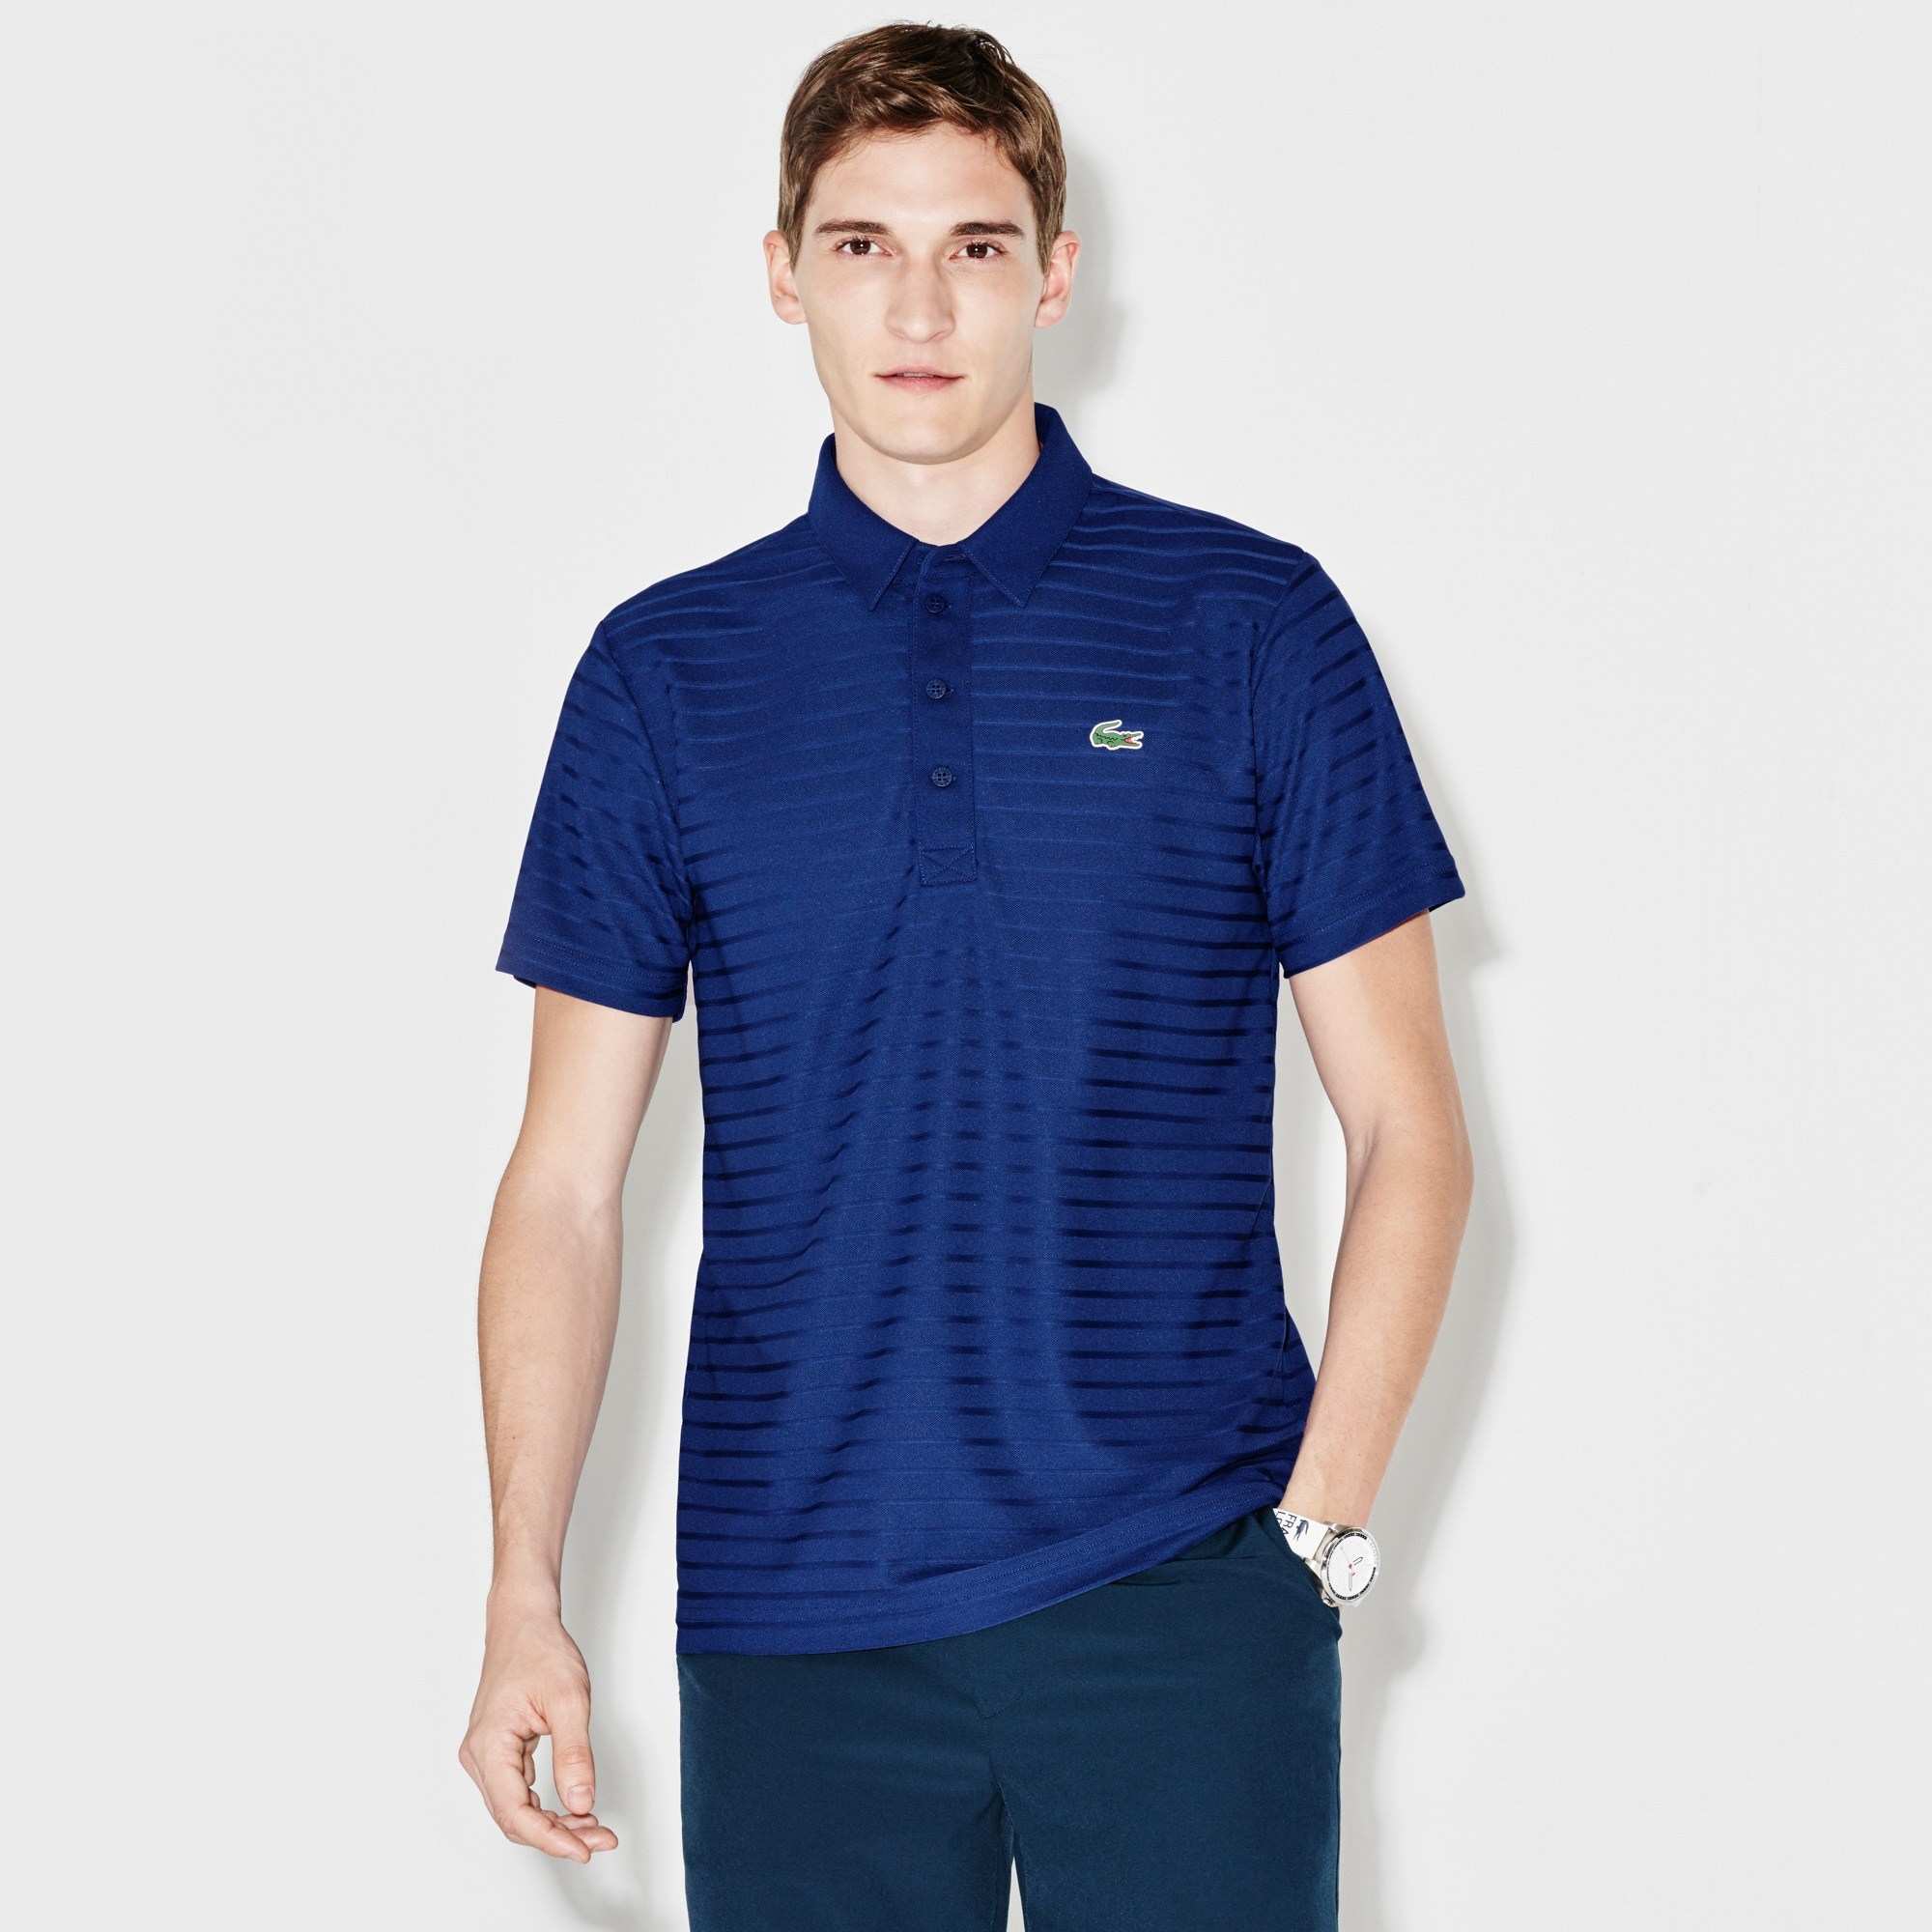 Men's SPORT Golf Striped Tech Jacquard Jersey Polo